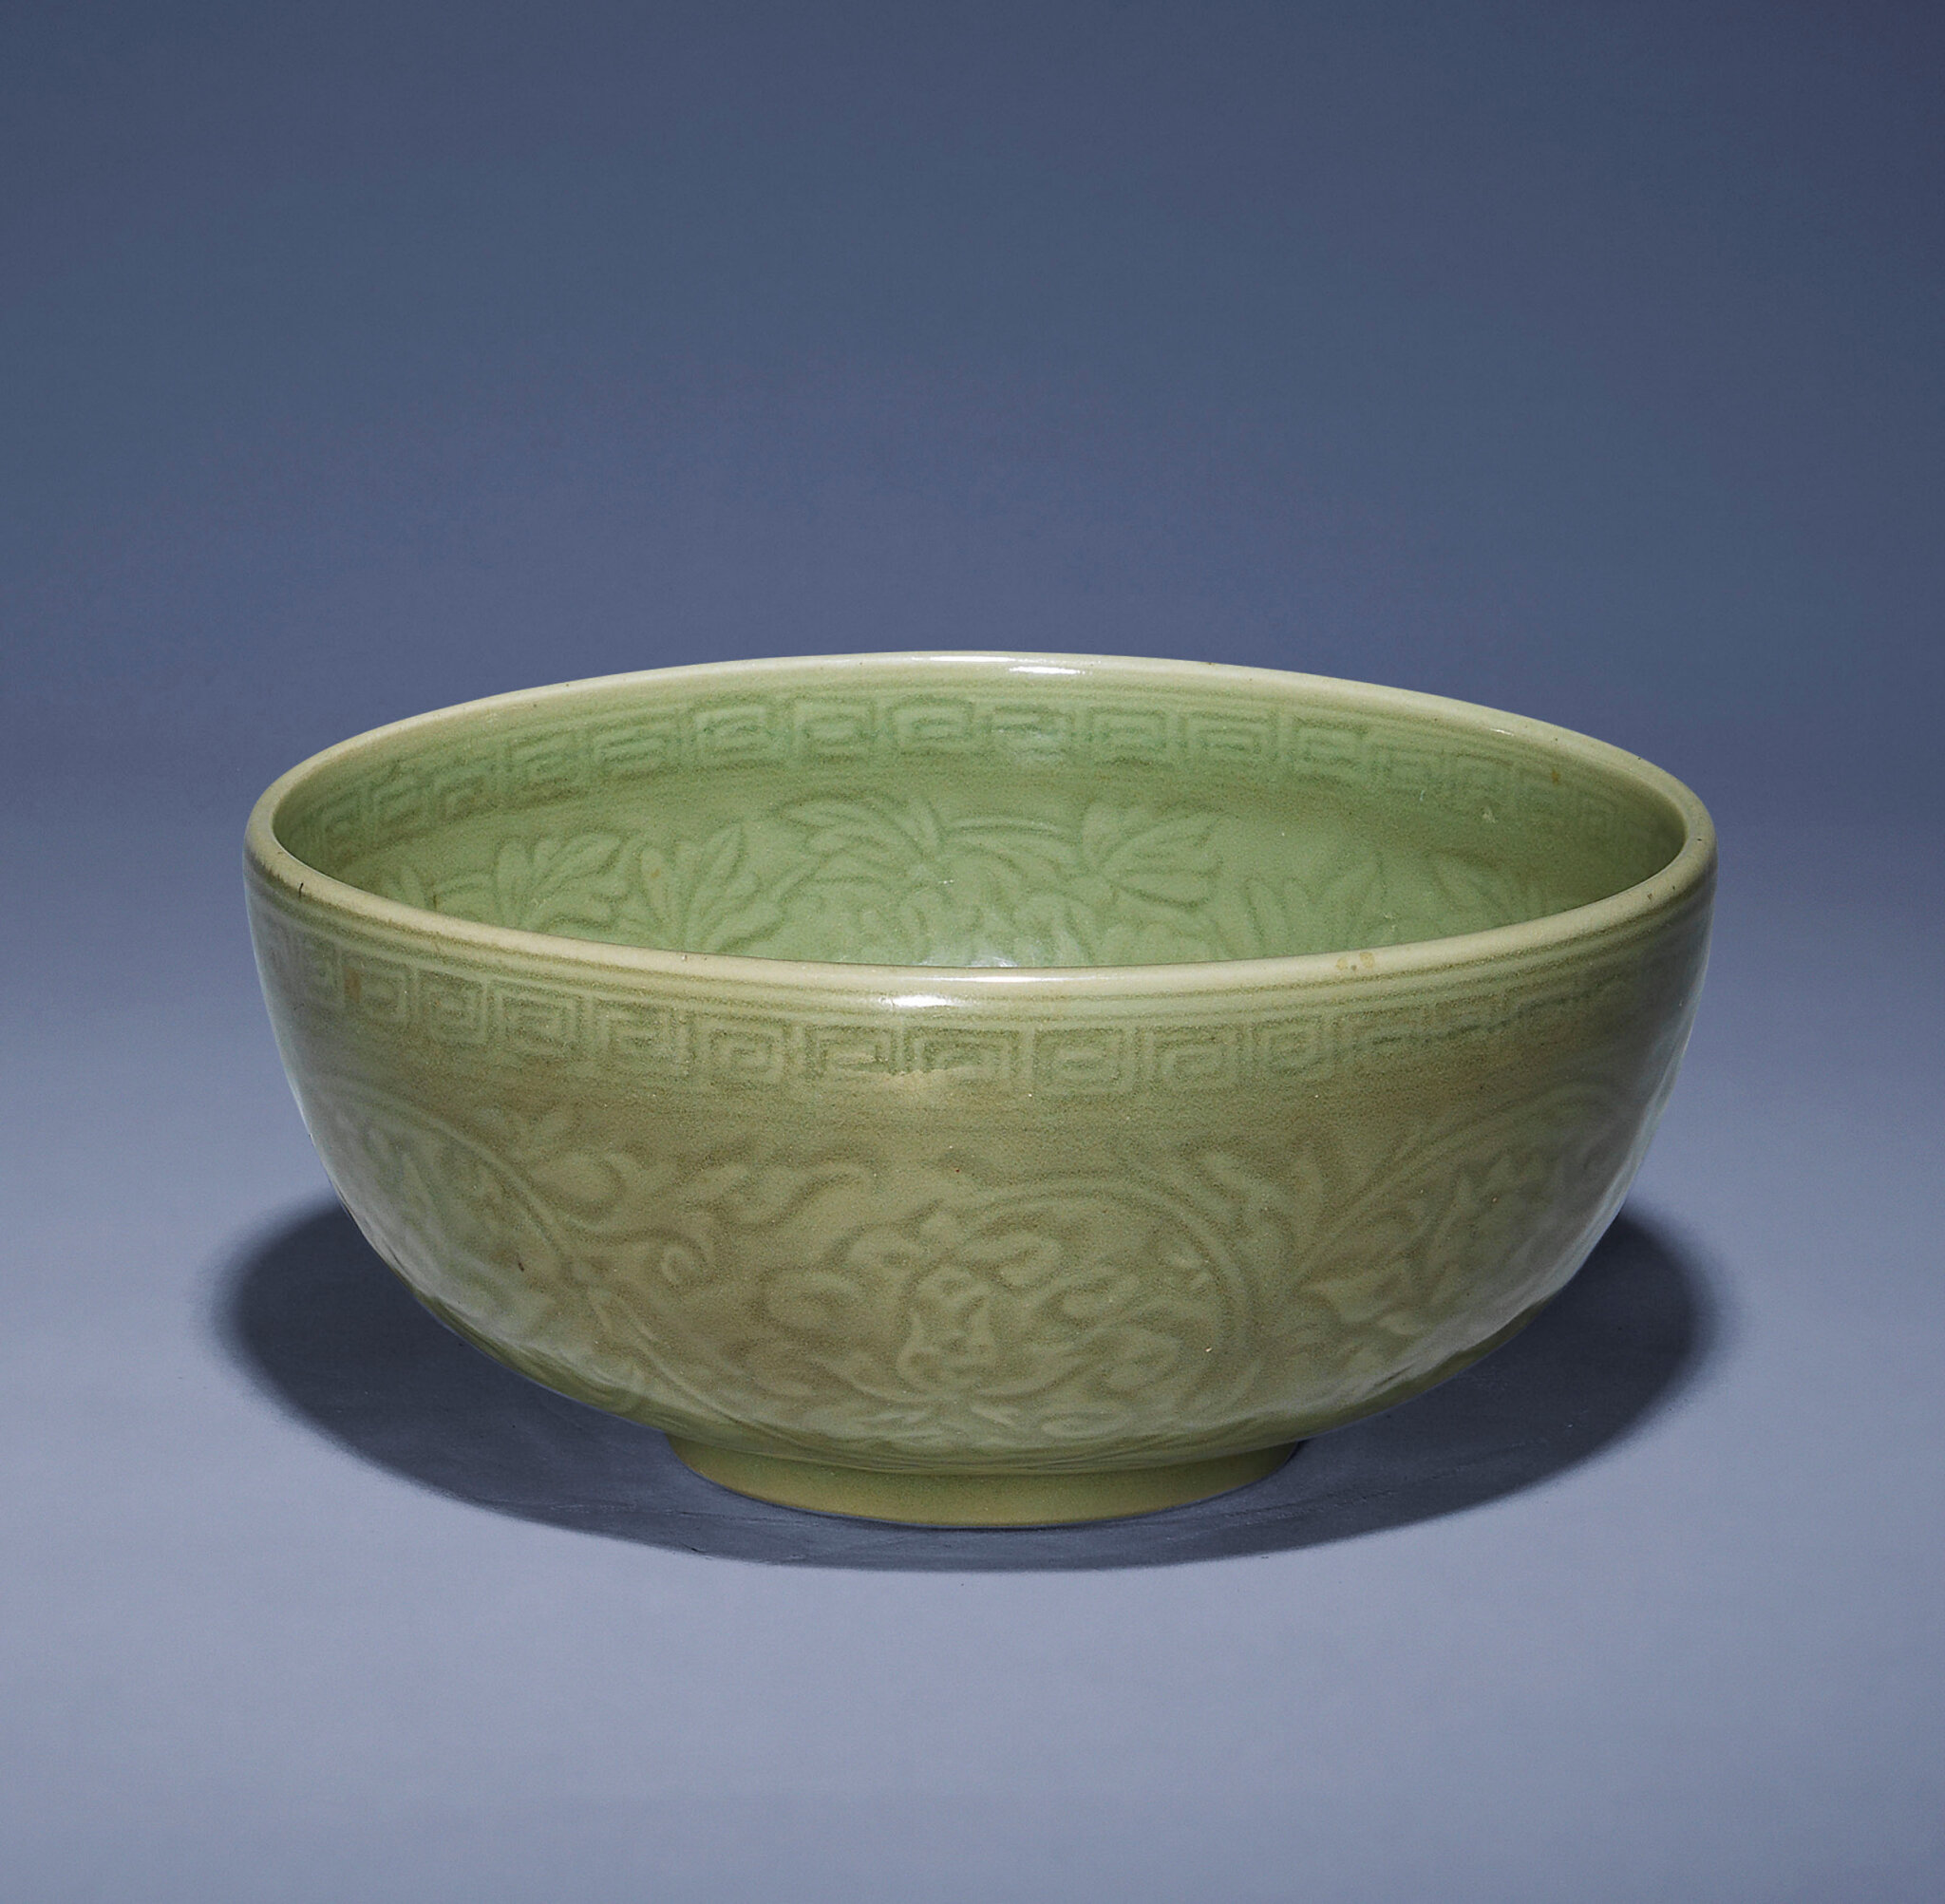 A carved Longquan celadon deep bowl, Ming dynasty, 15th century